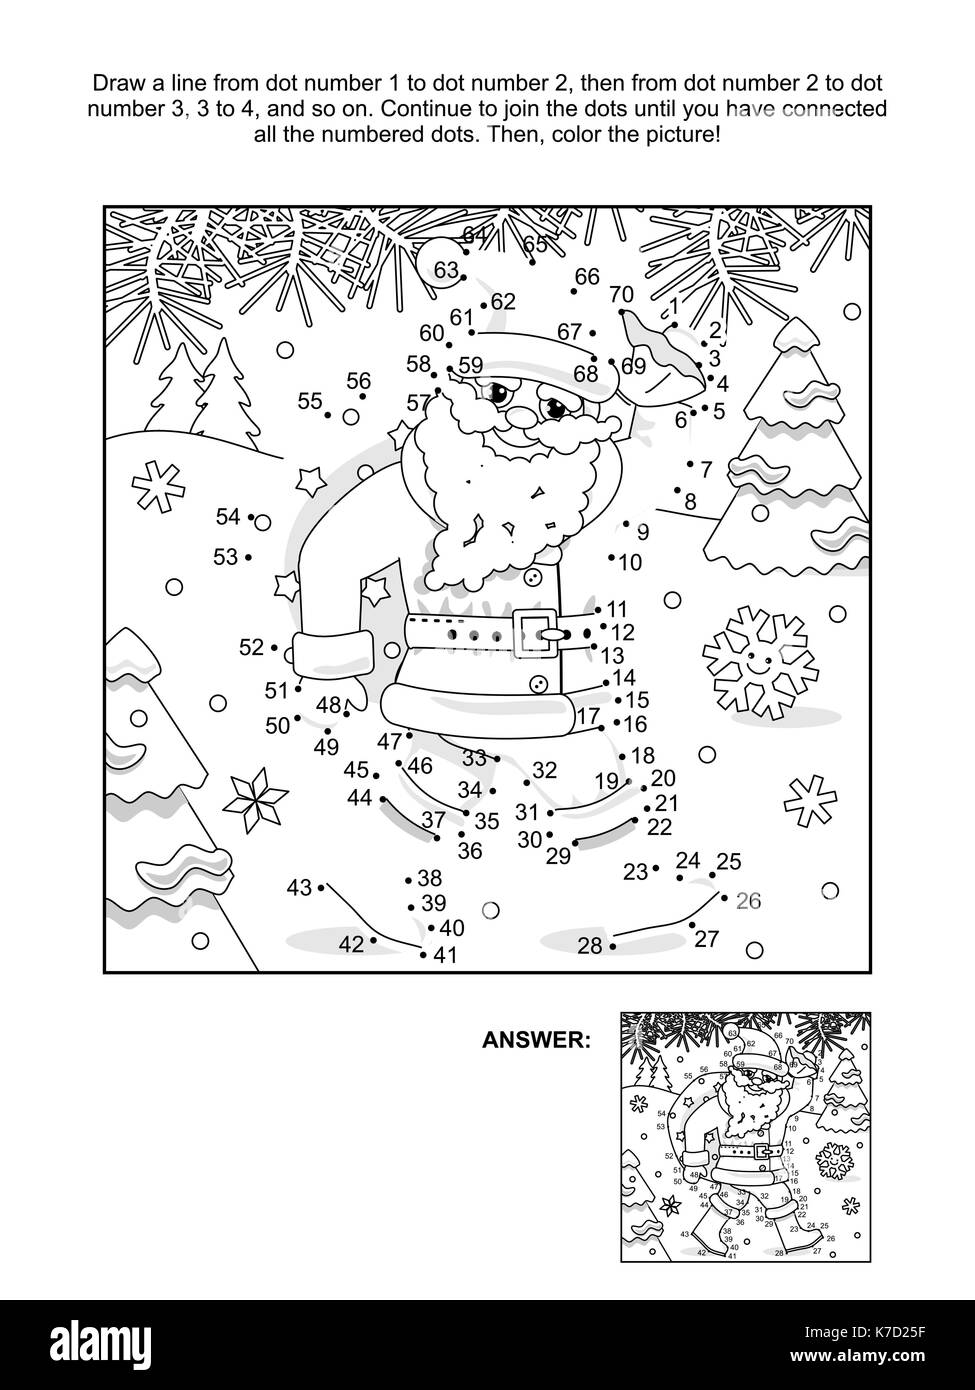 New Year Or Christmas Themed Connect The Dots Picture Puzzle And Coloring Page With Santa Delivering Sack Full Of Gifts Presents Answer Included